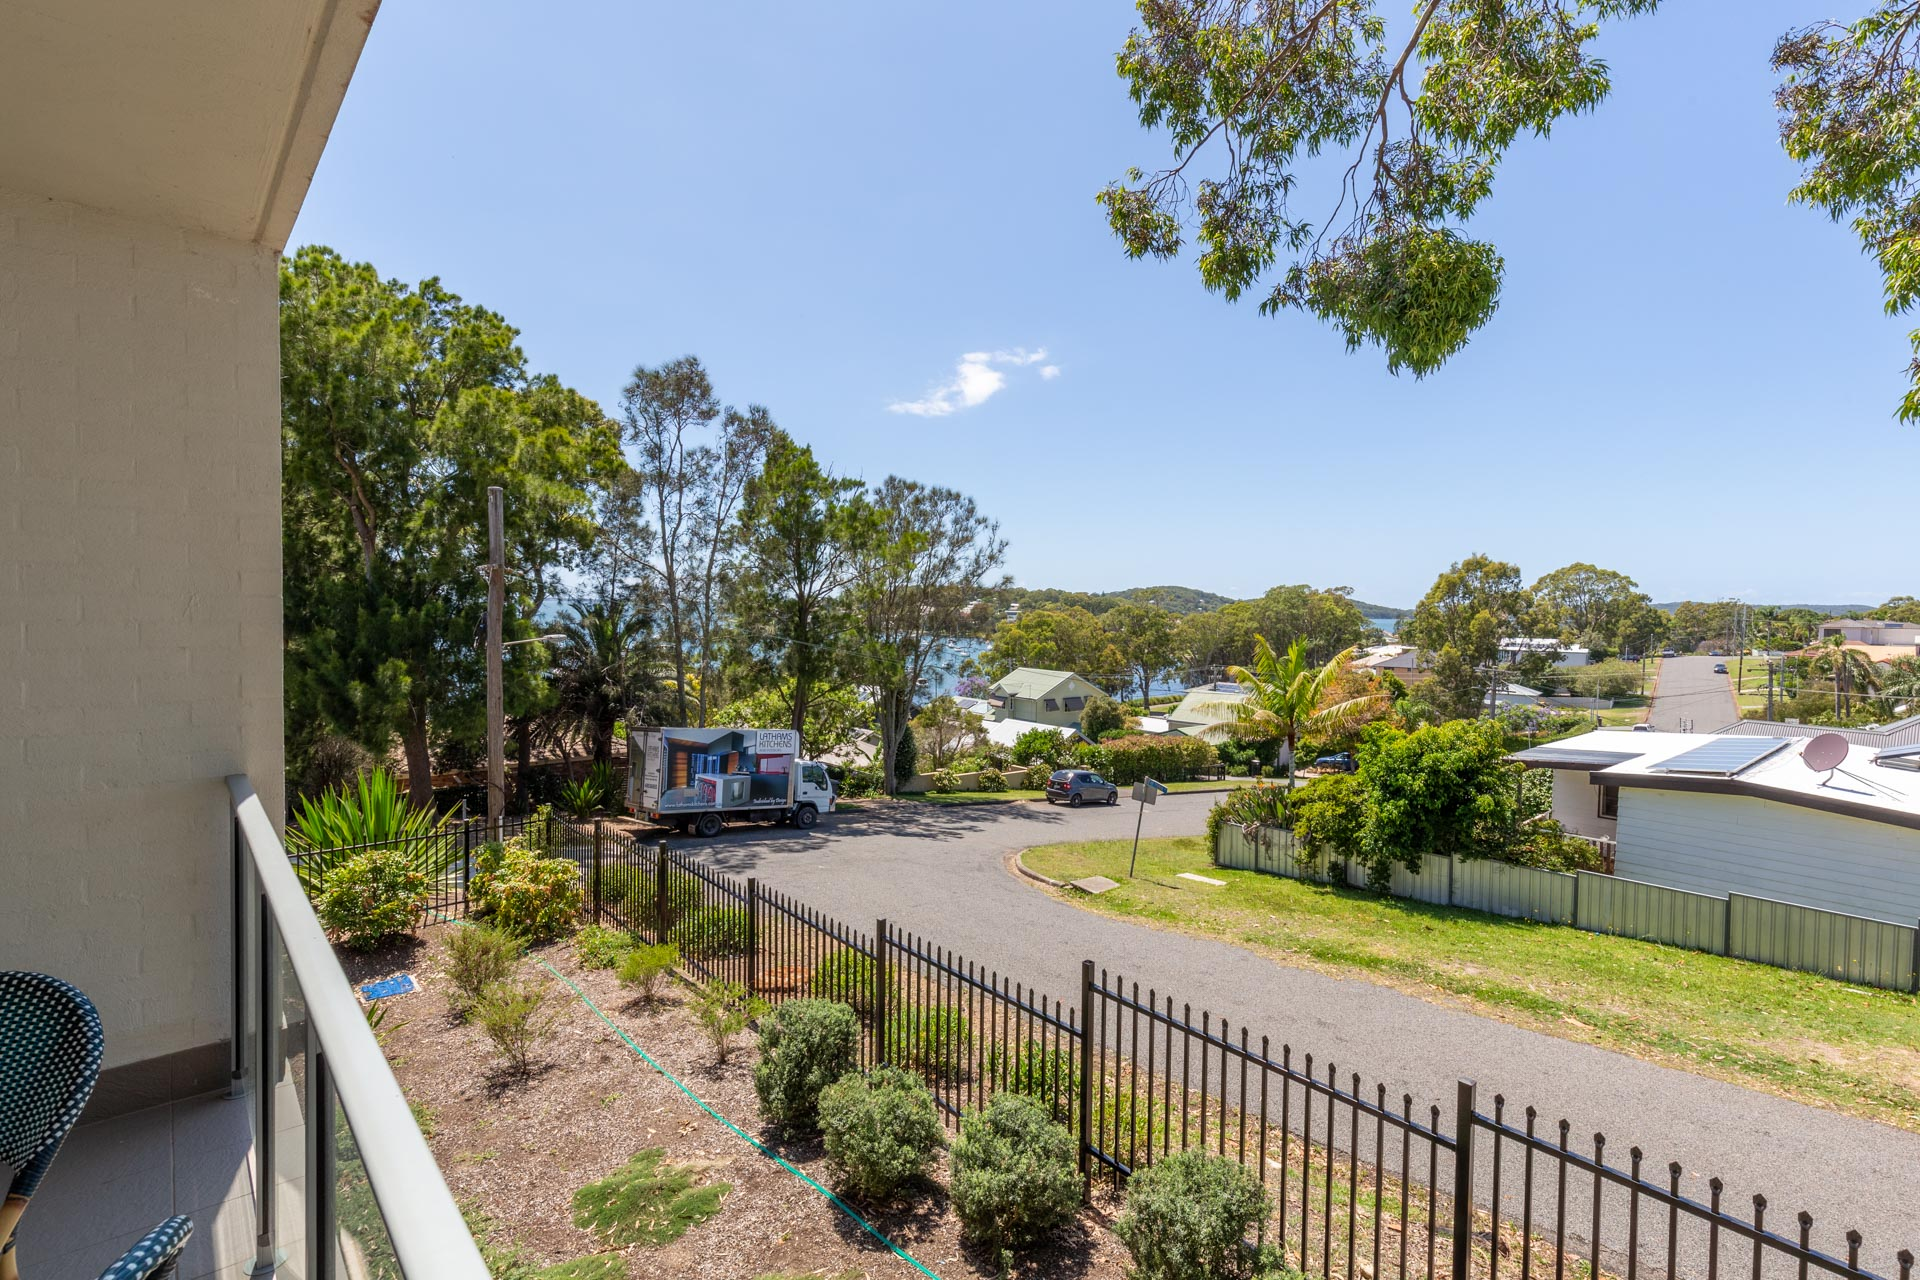 89 11 Dobell Dr   Wangi Shores (16 of 19)